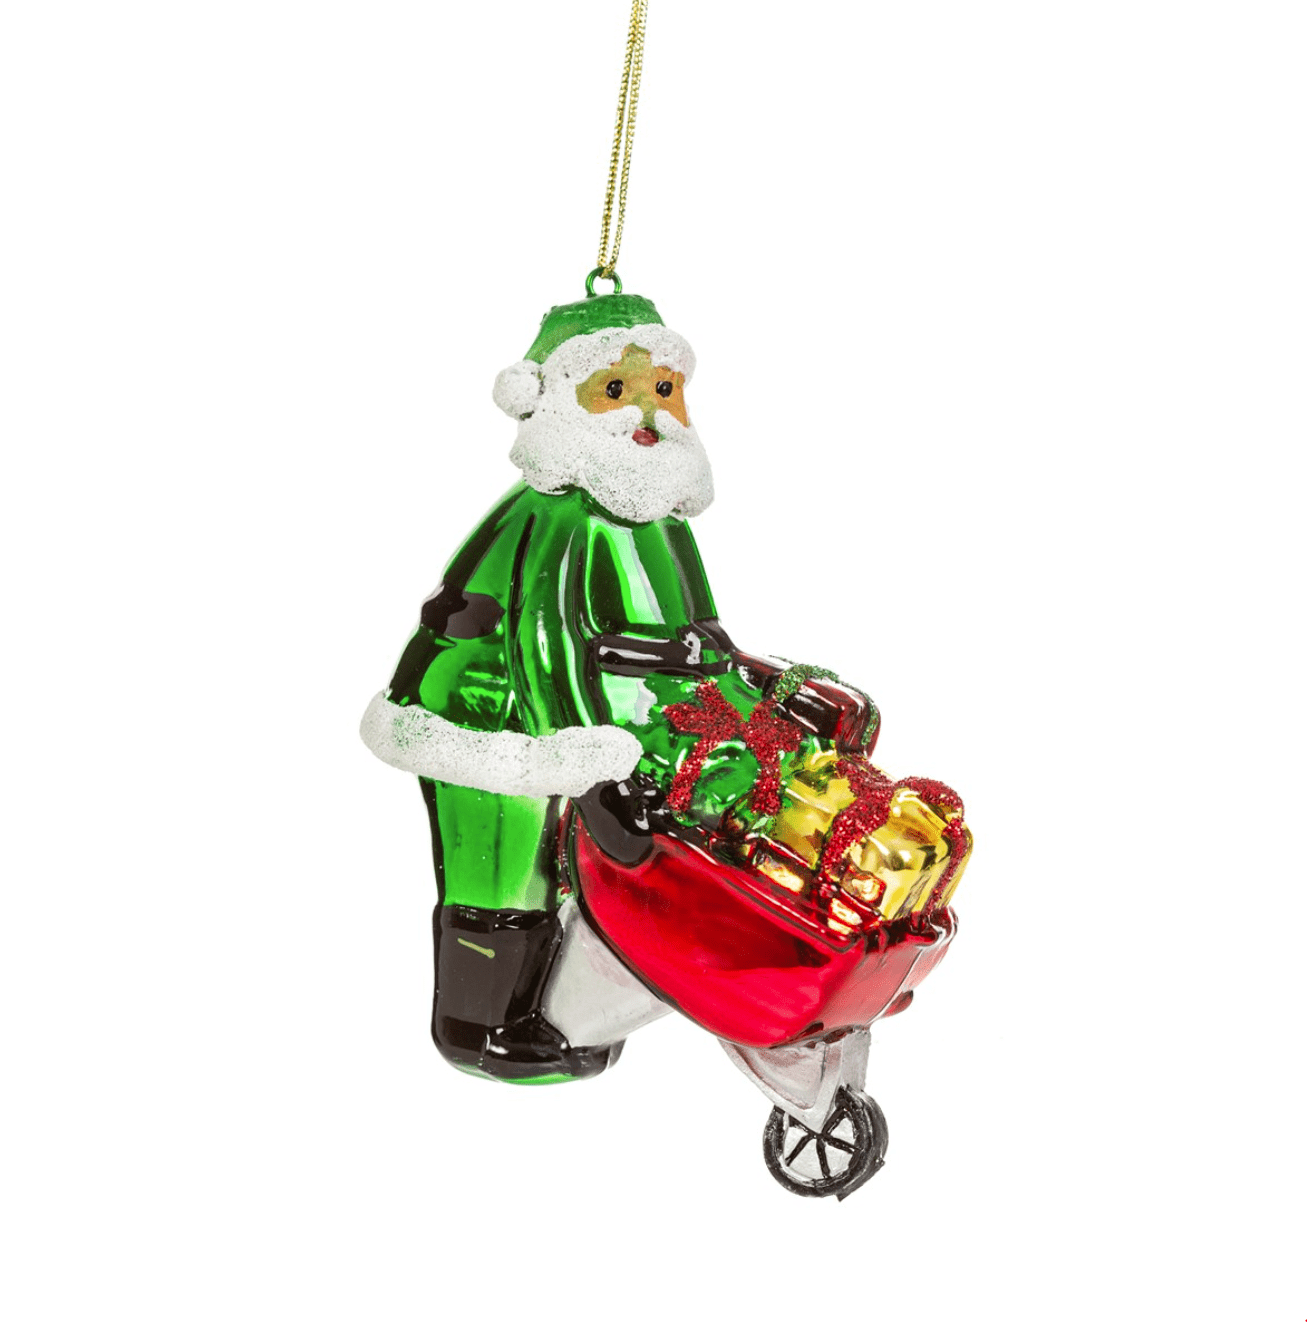 Green Santa Decoration By Sass & Belle